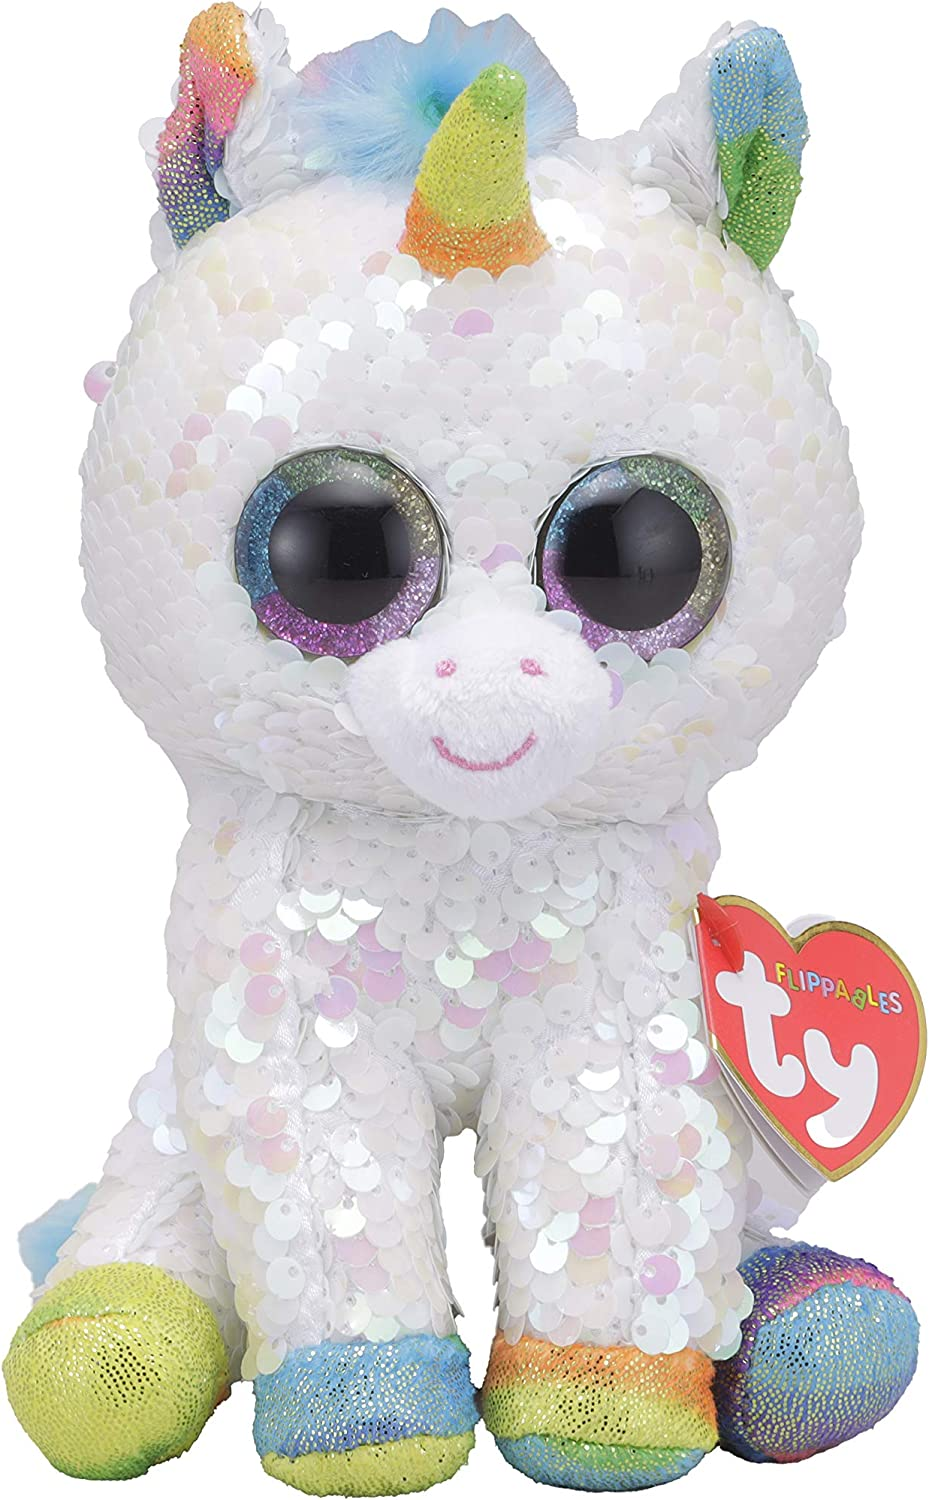 "Pixy Unicorn Sequin TY Beanie Babies Flippables Plush stuffed animal 6/"" new"